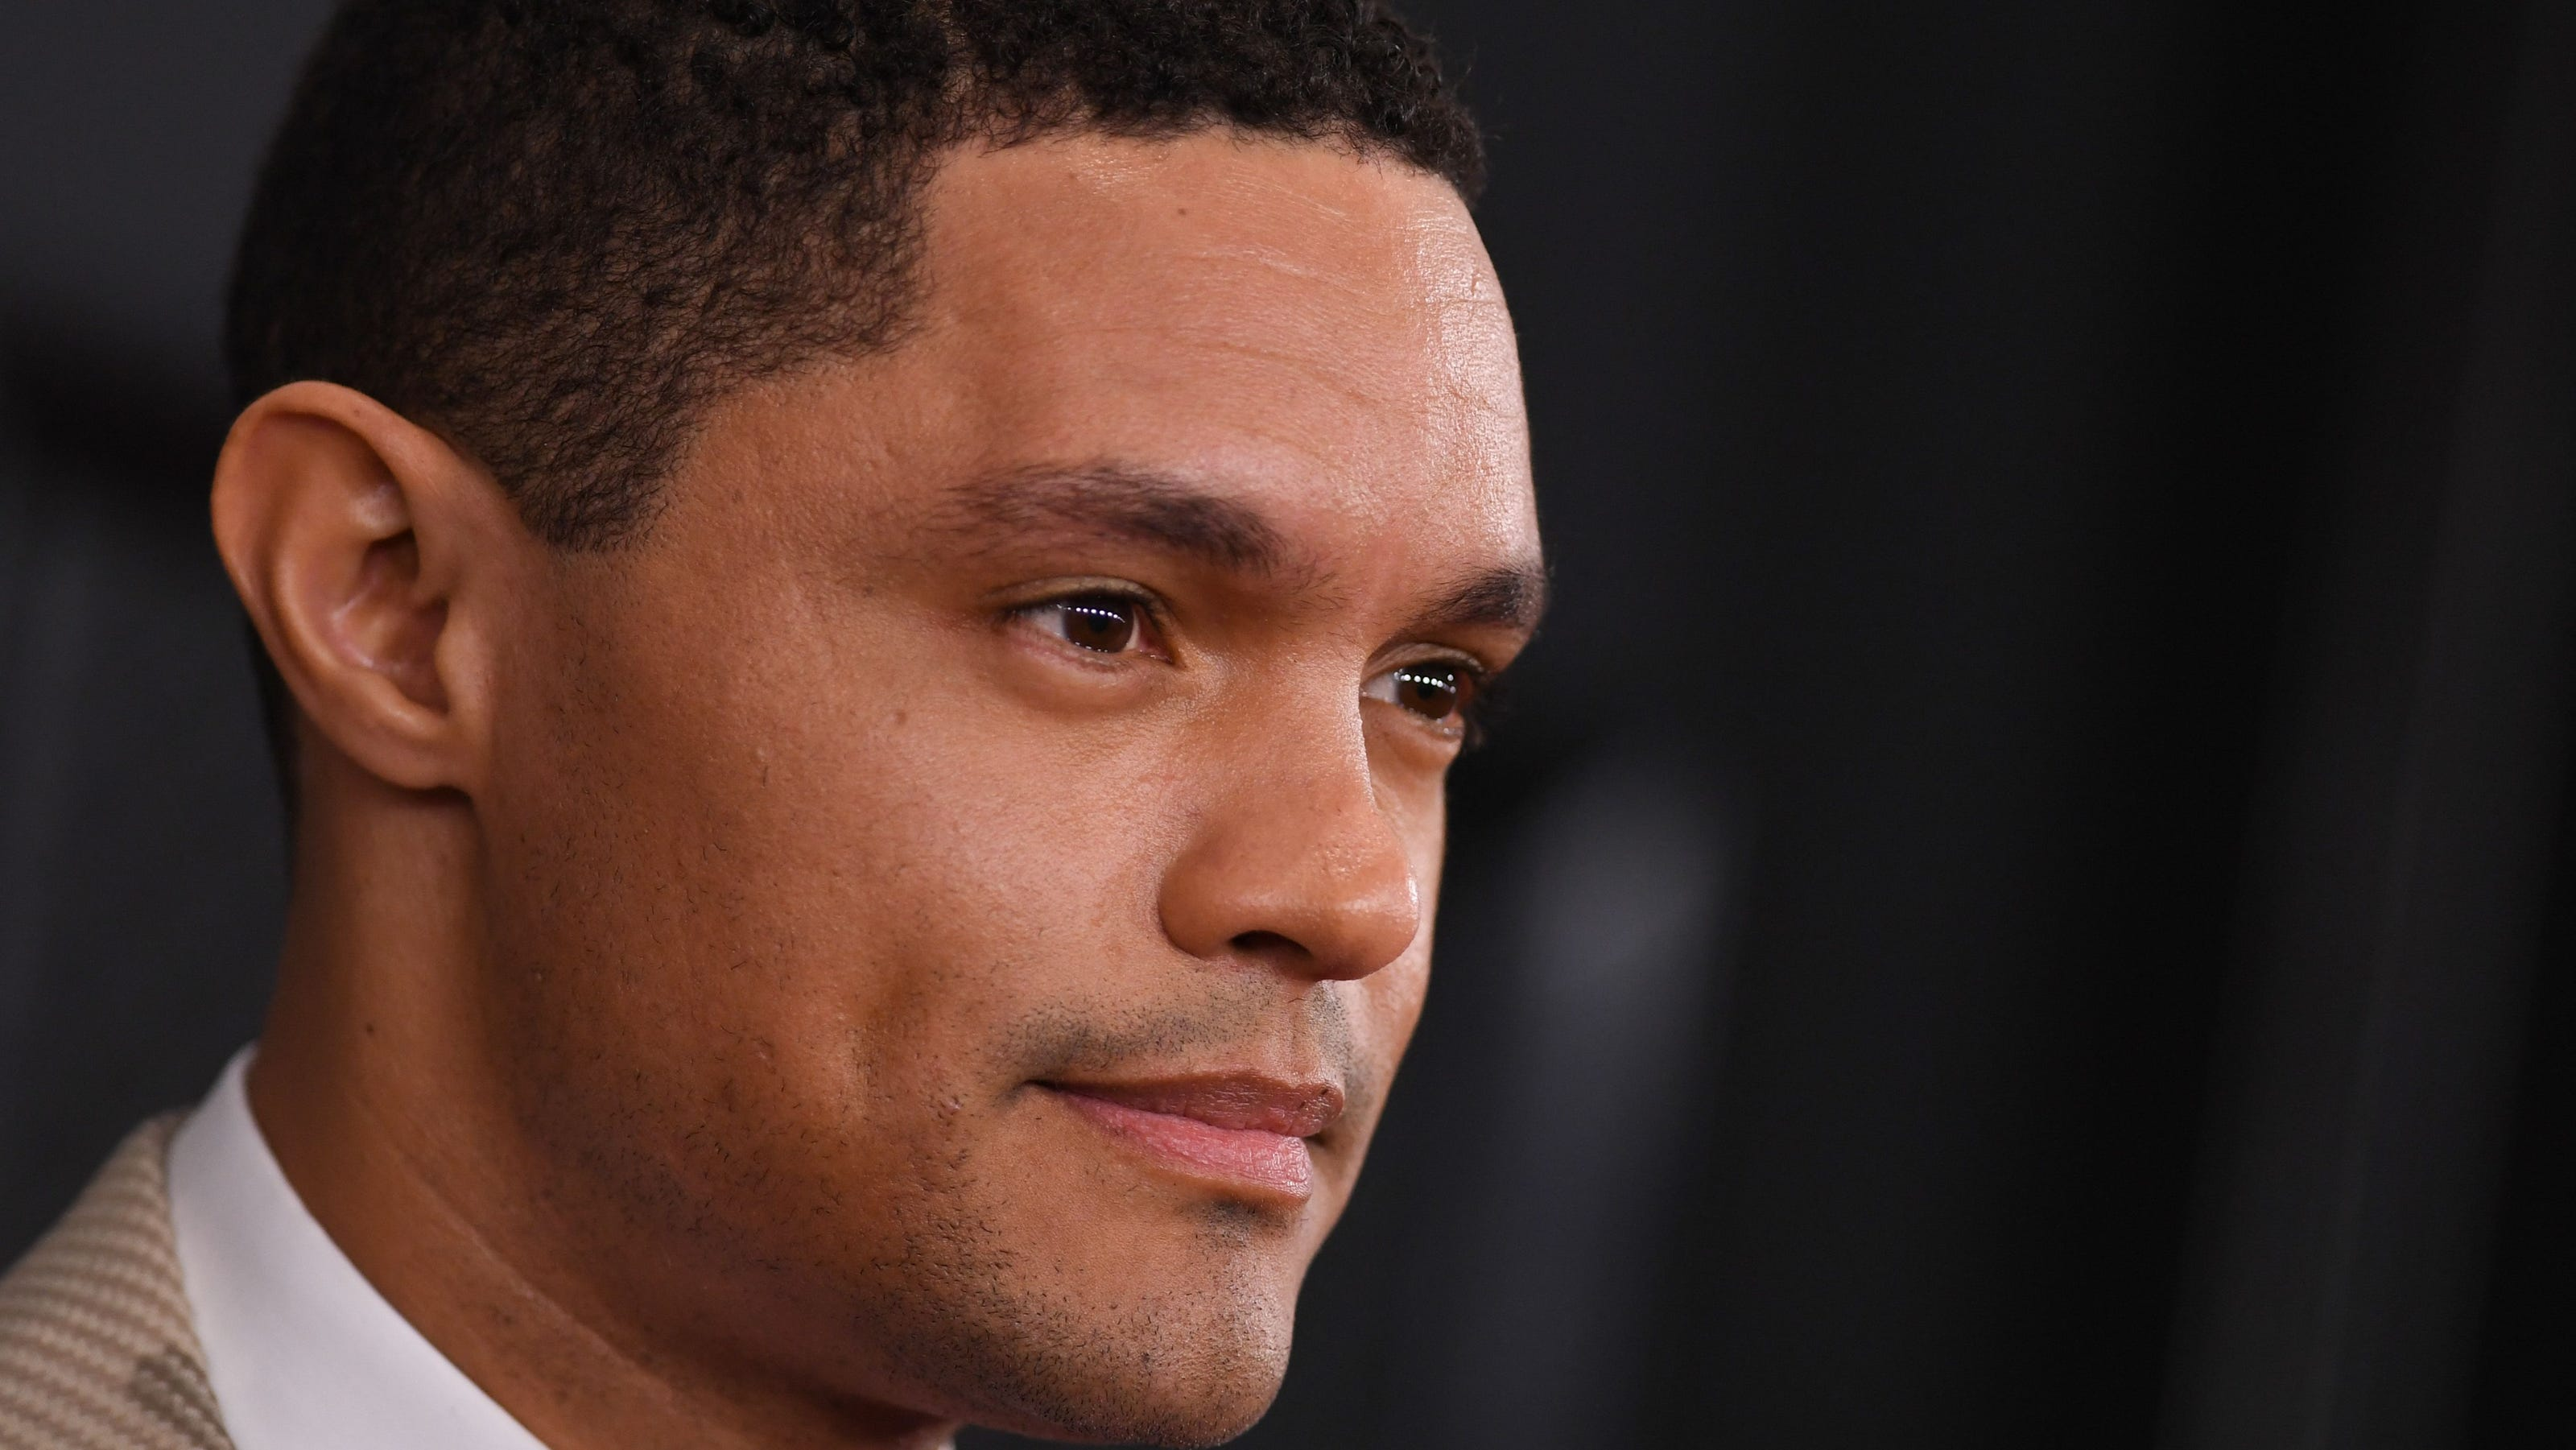 www.usatoday.com: Trevor Noah on Atlanta shootings: 'If that's not racism then the word has no meaning'